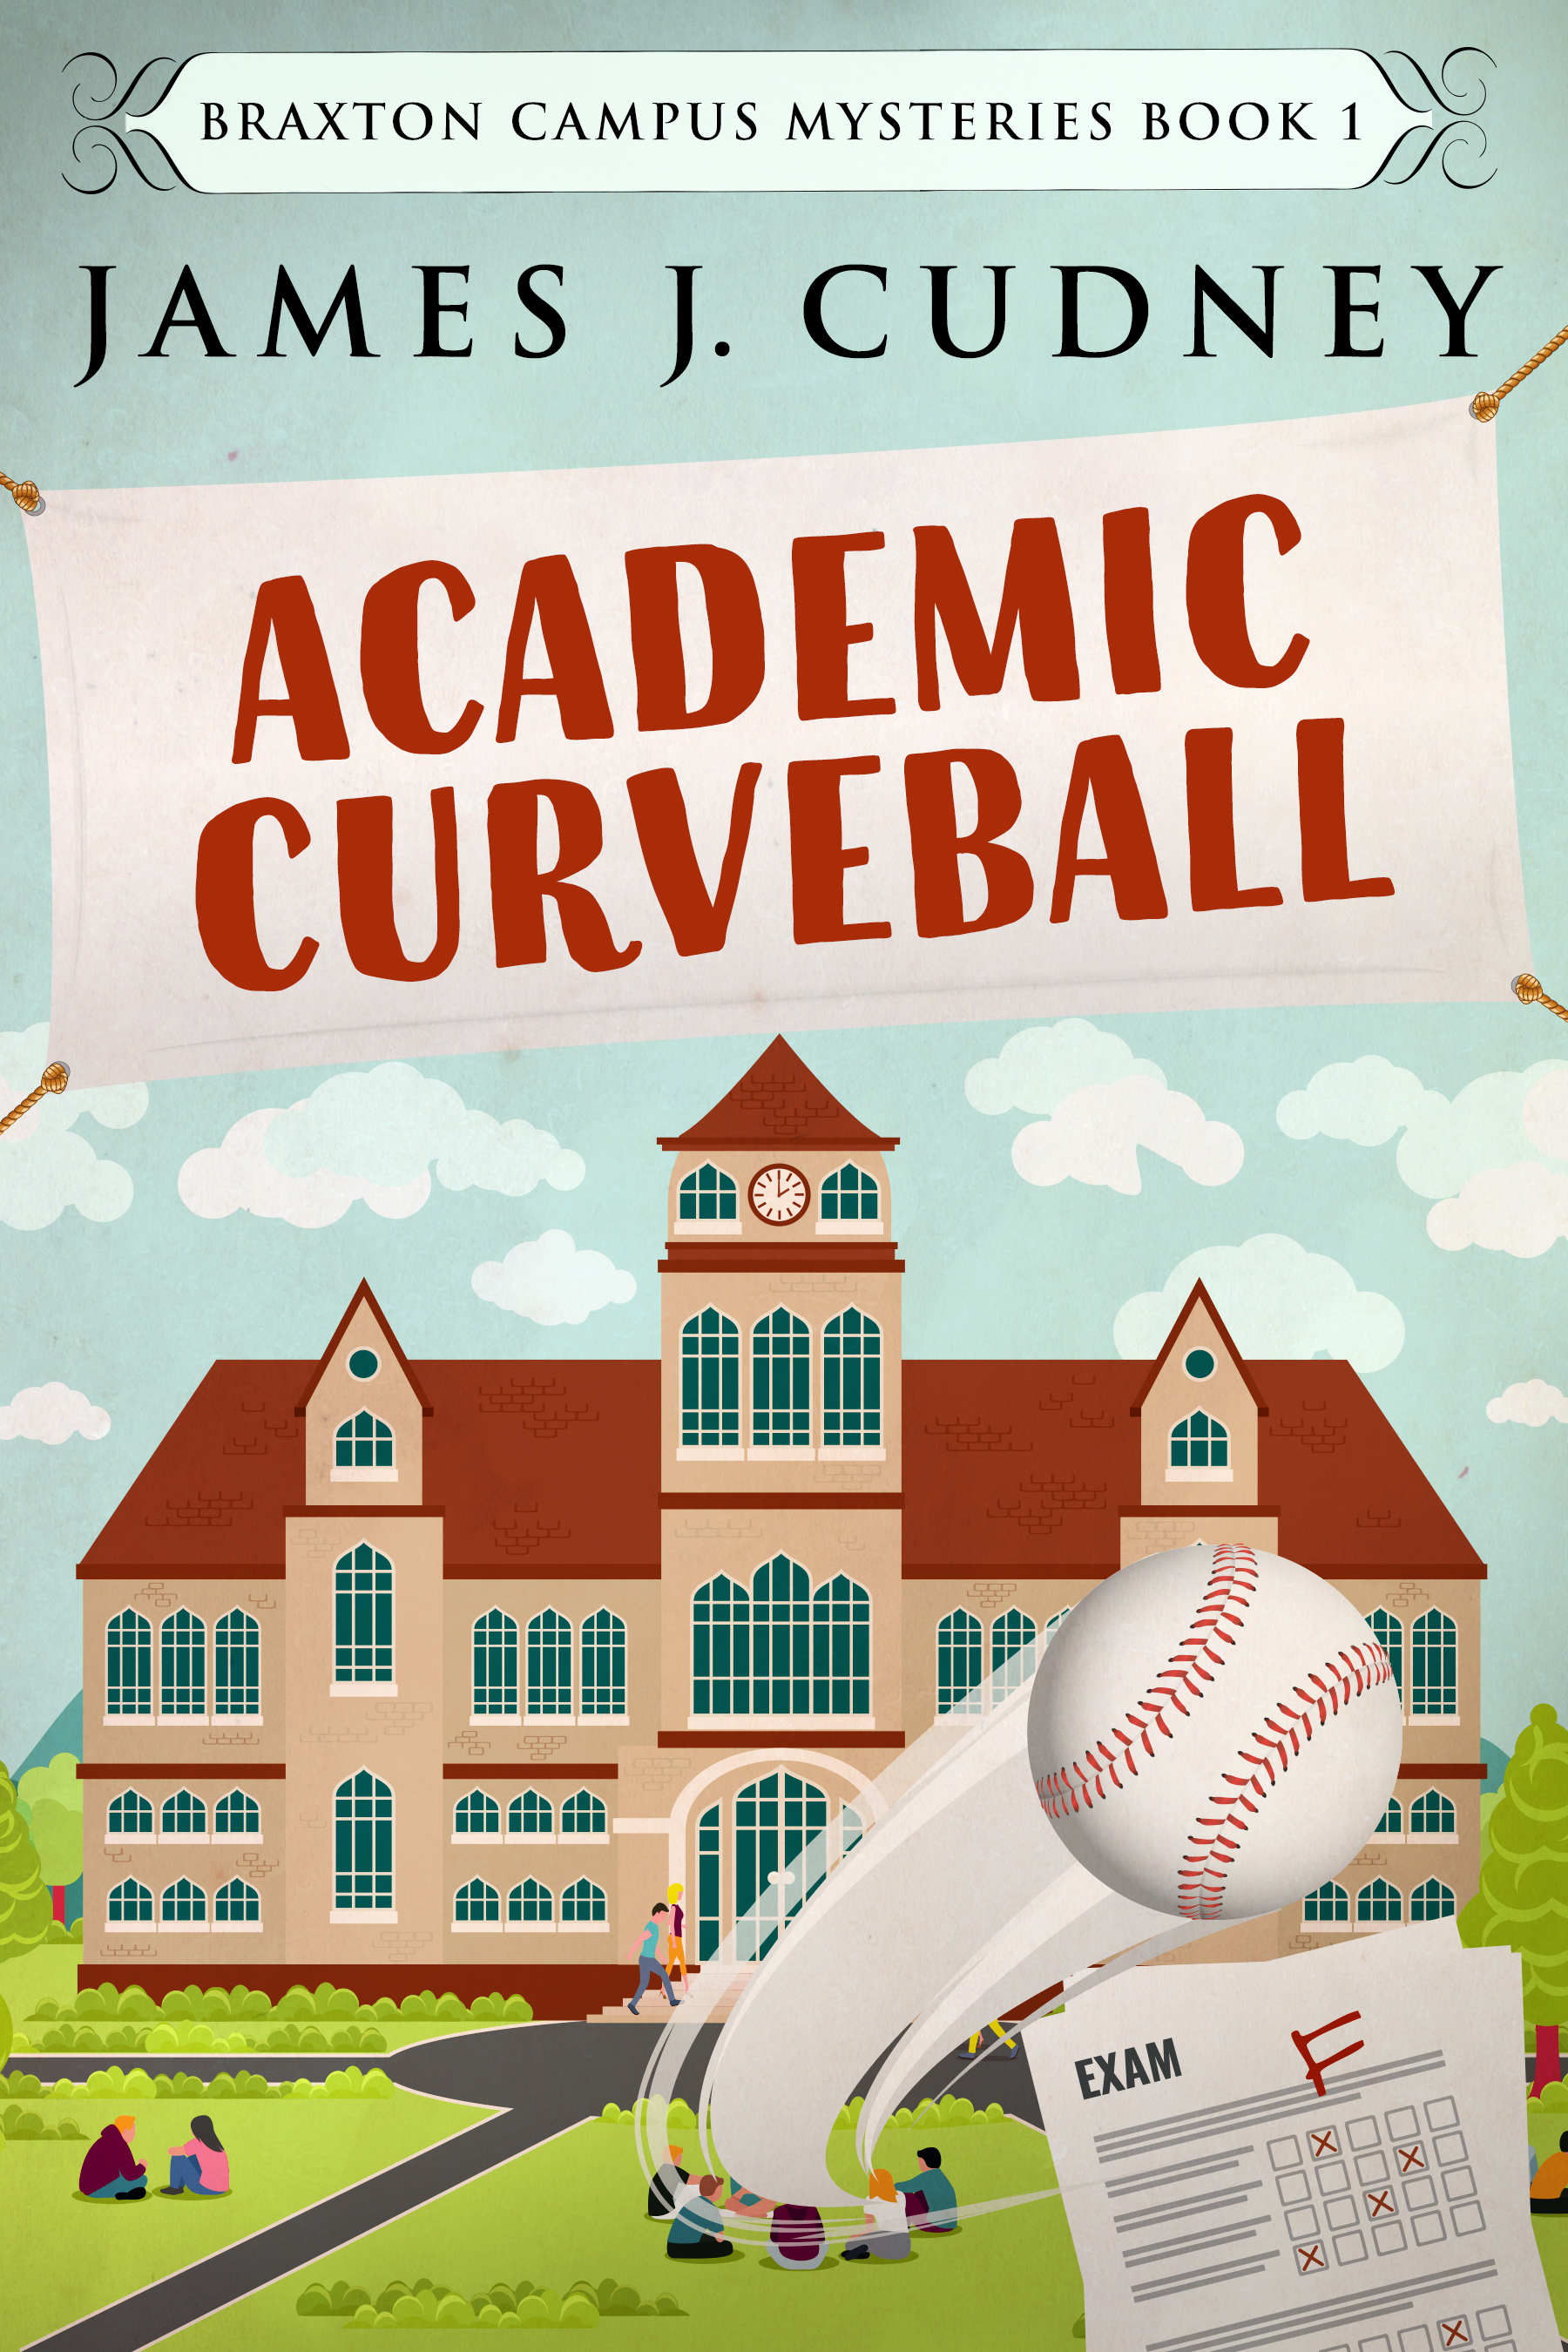 Cudney - Academic Curveball